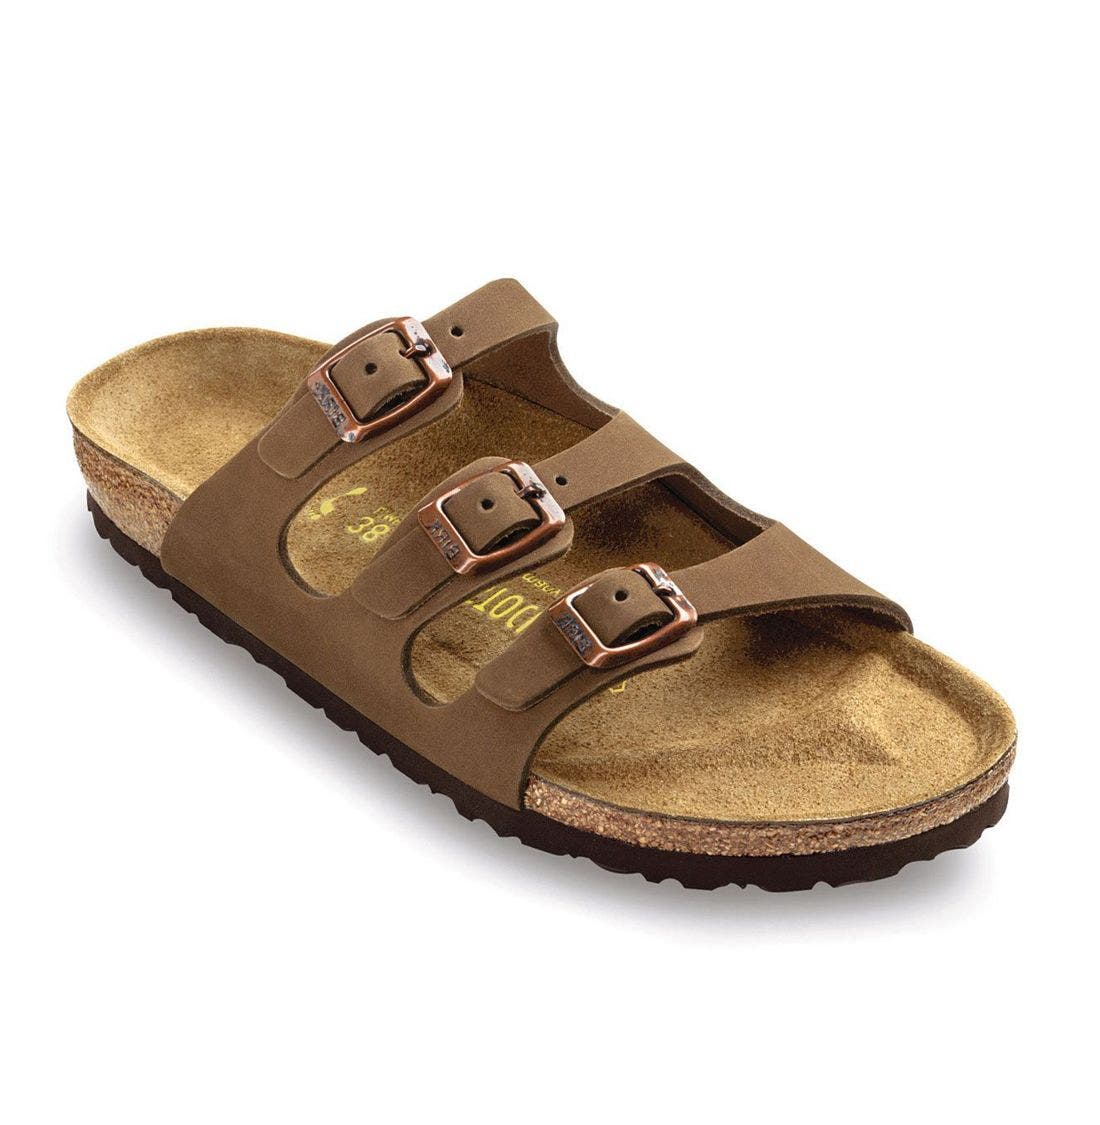 Alternate Image 1 Selected - Birkenstock 'Florida' Sandal (Women)